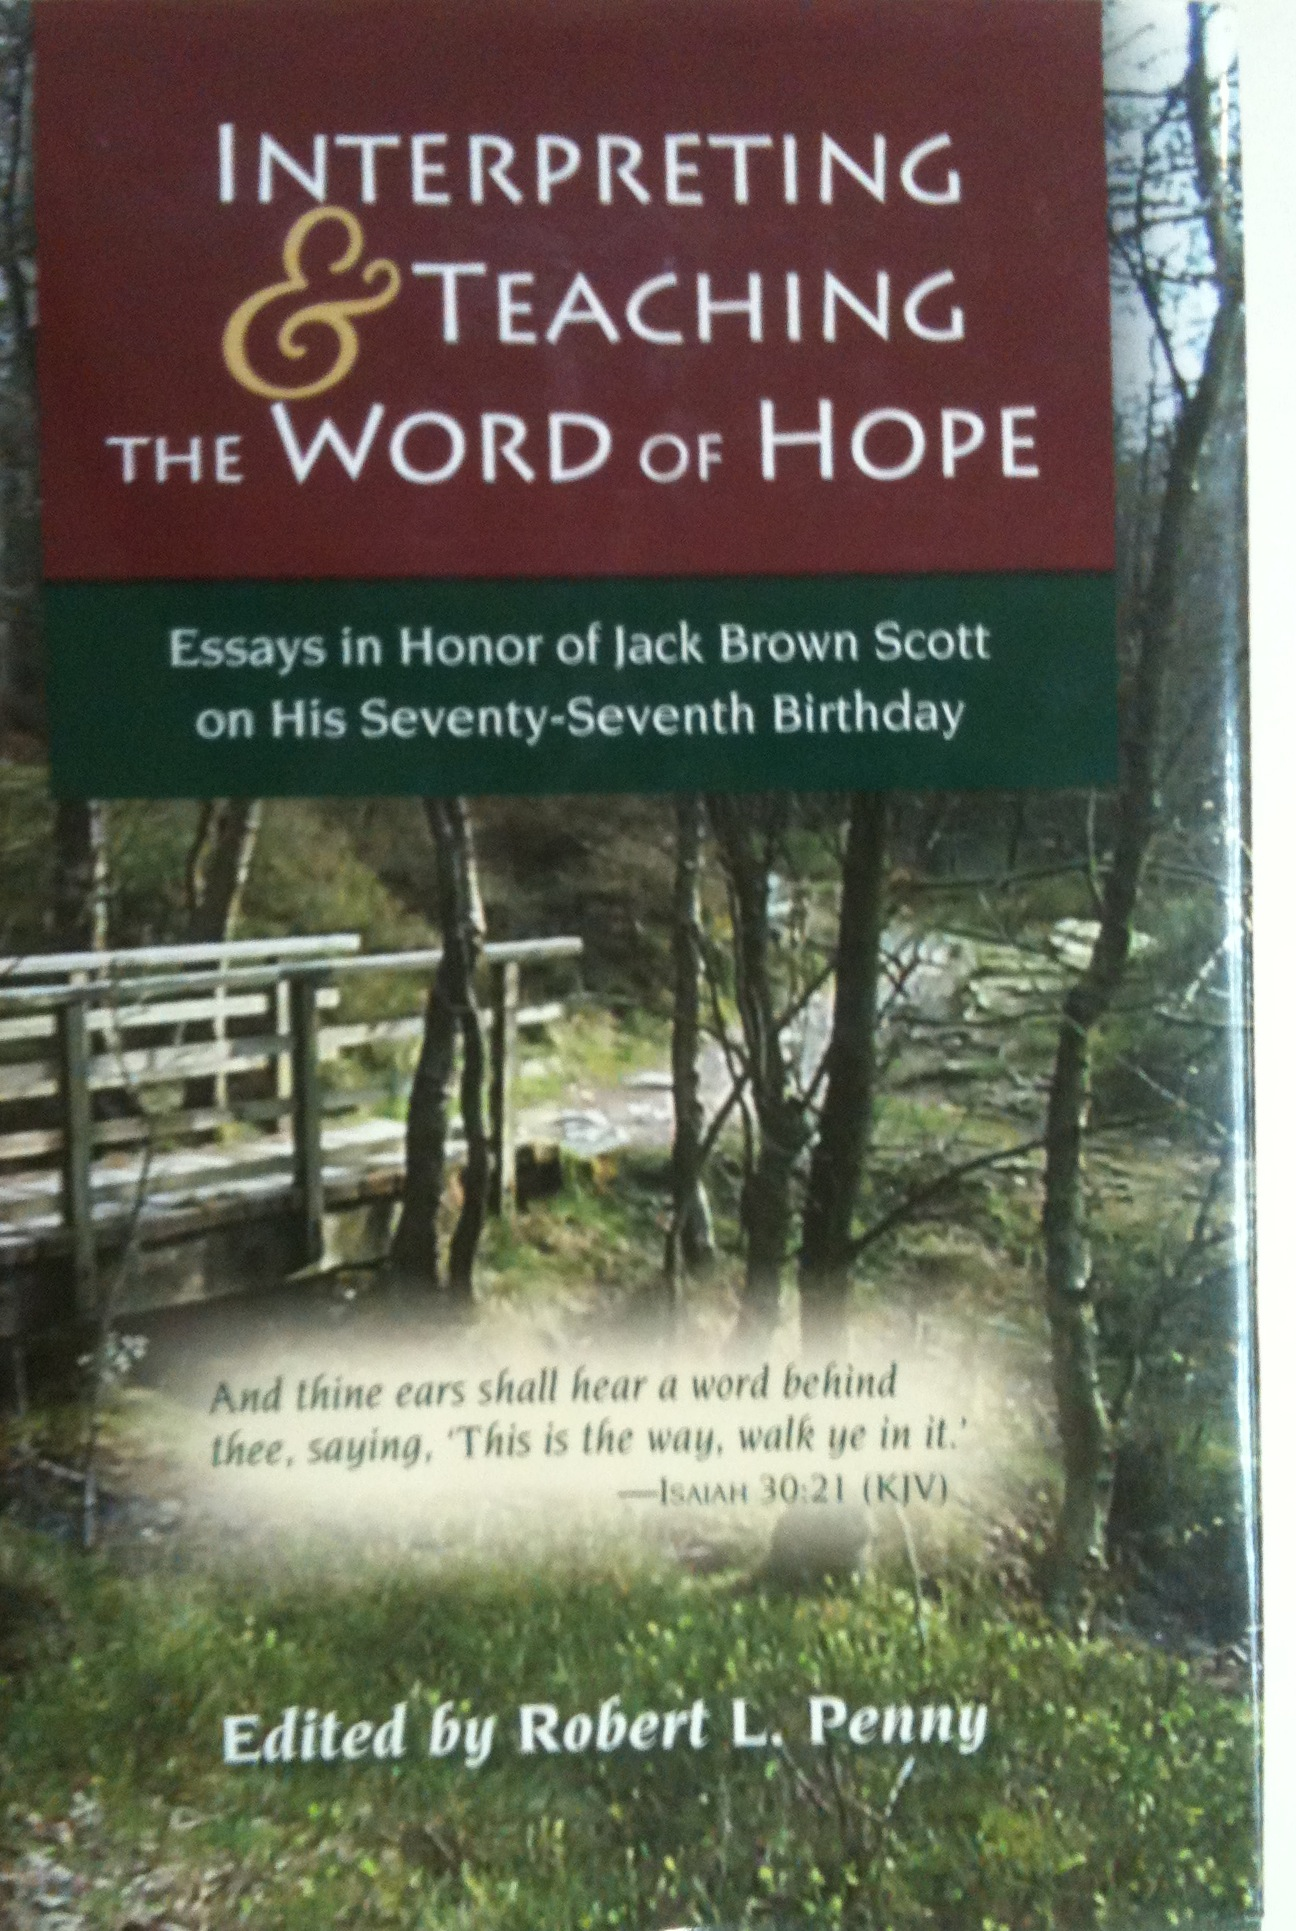 hope essays interpreting teaching the word of hope essays in honor  interpreting teaching the word of hope essays in honor of jack the life and ministry of